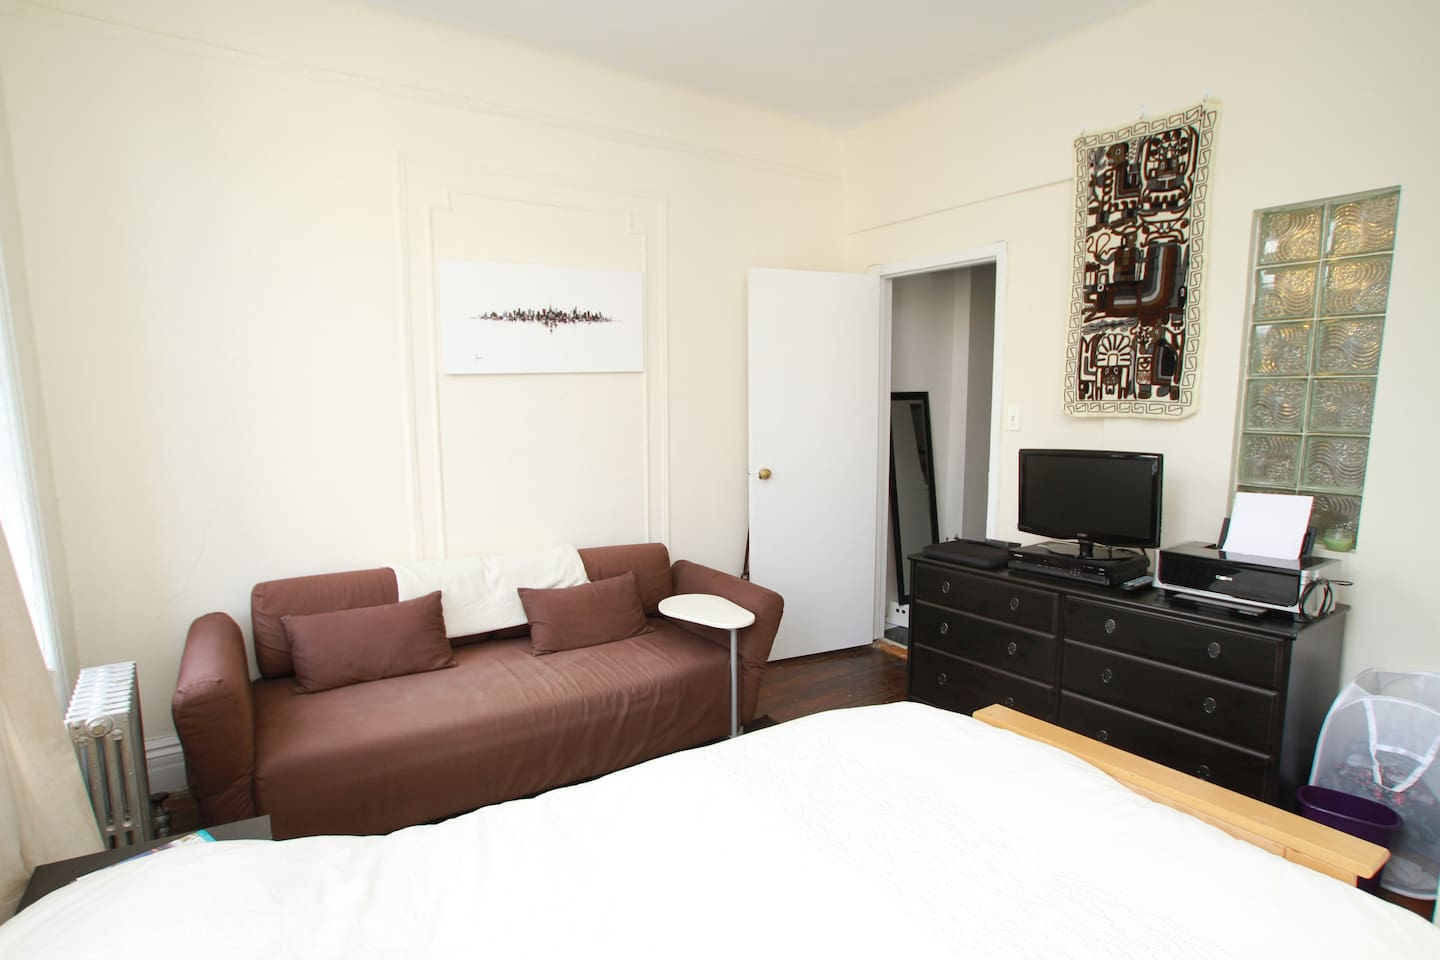 Photo 1 - Main bedroom - photo taken by airbnb